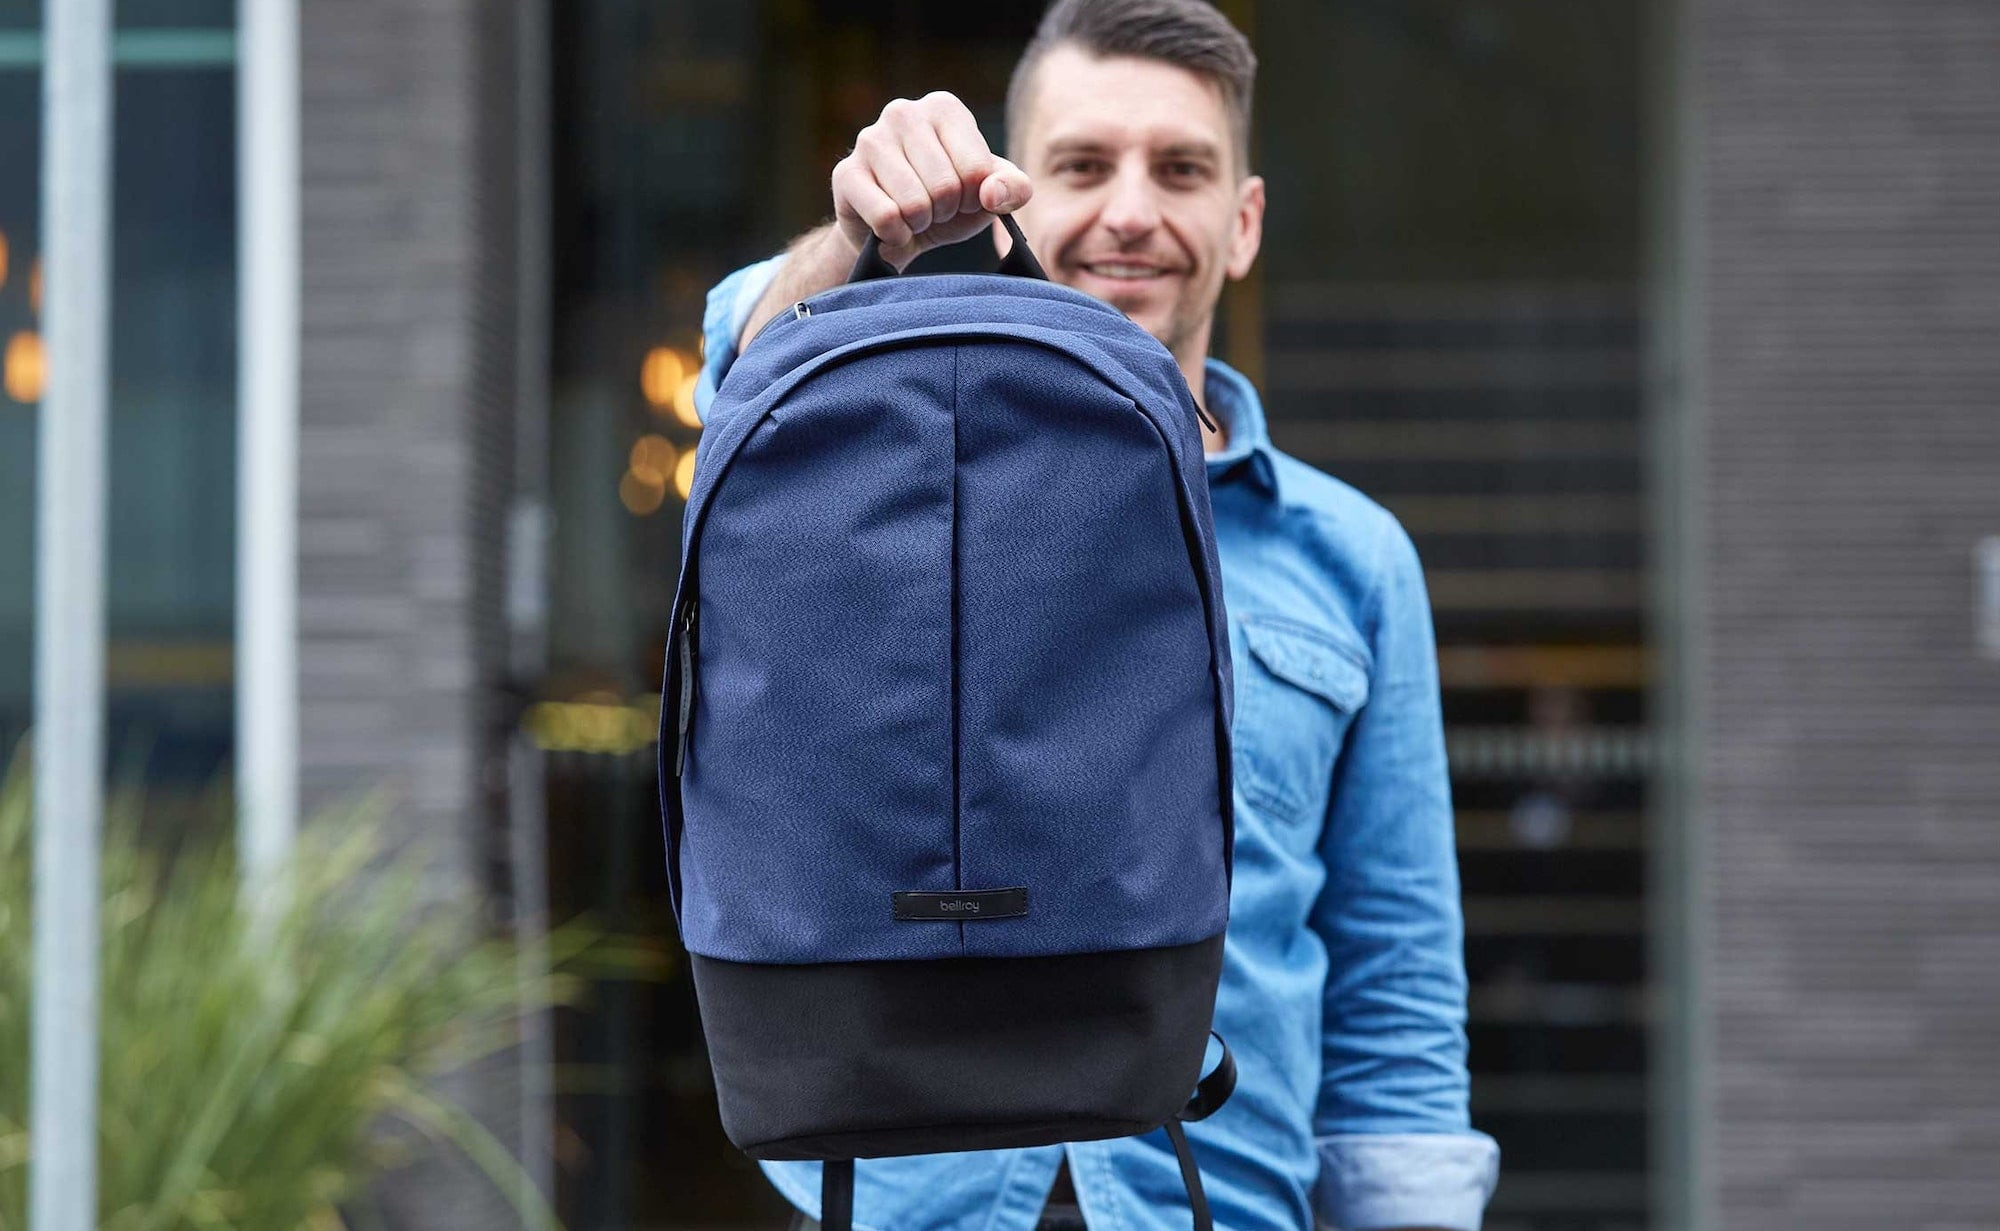 Bellroy Classic Backpack Plus Dual-Compartment Pack includes a waterproof laptop compartment